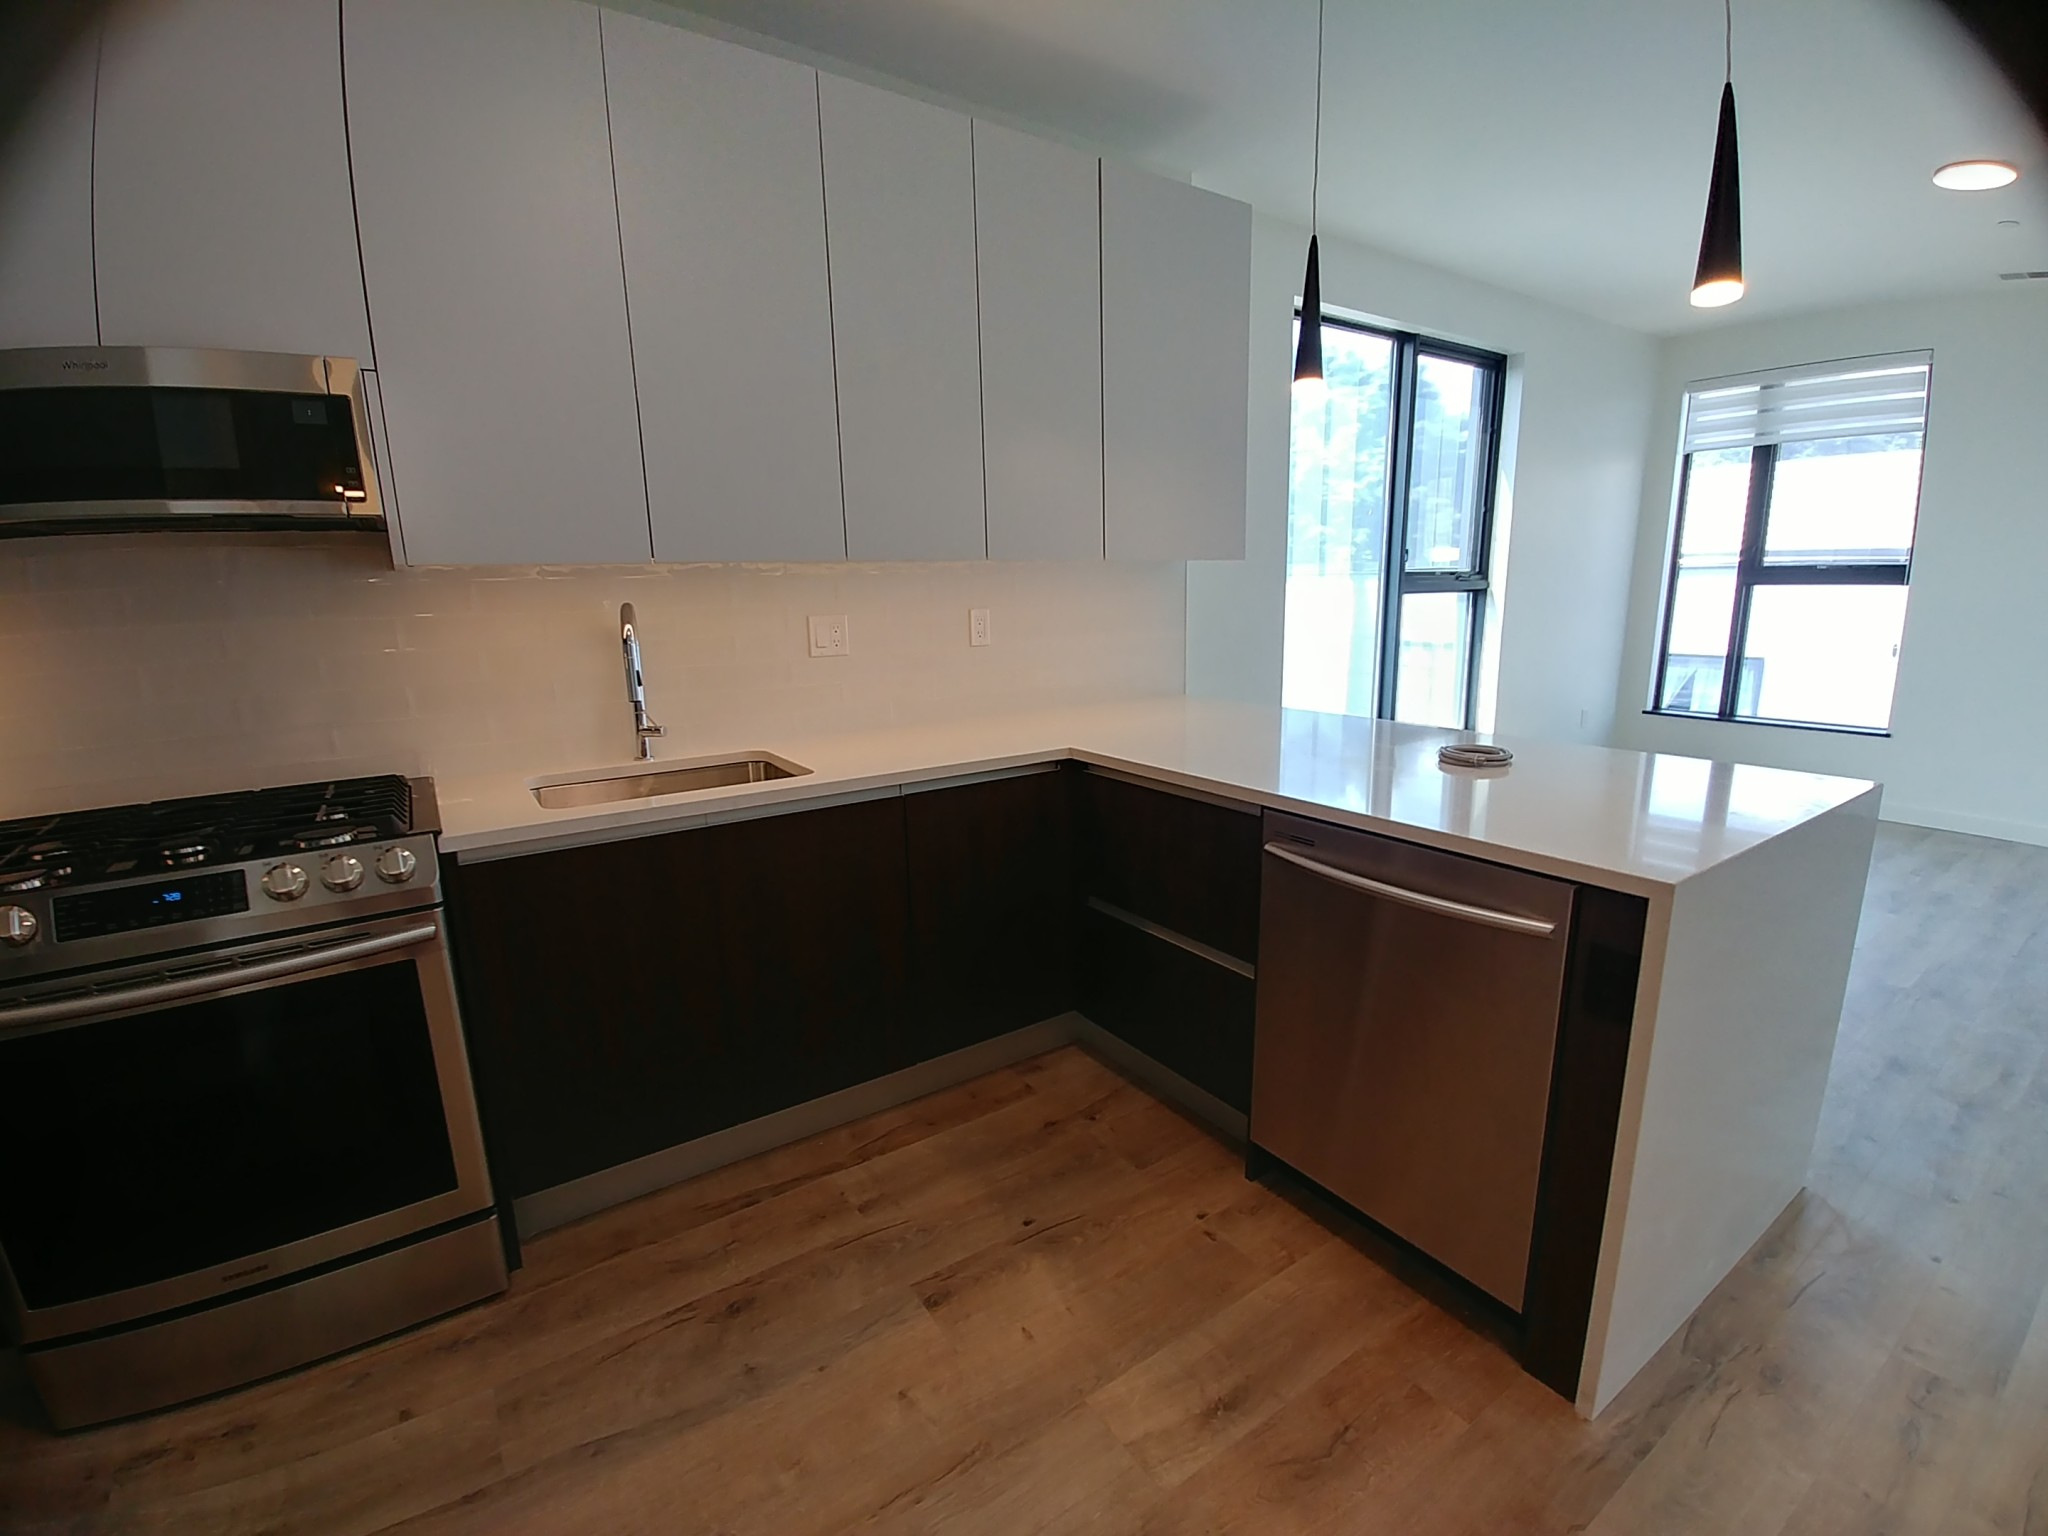 1 Bed, 1 Bath apartment in Boston, Mission Hill for $2,704